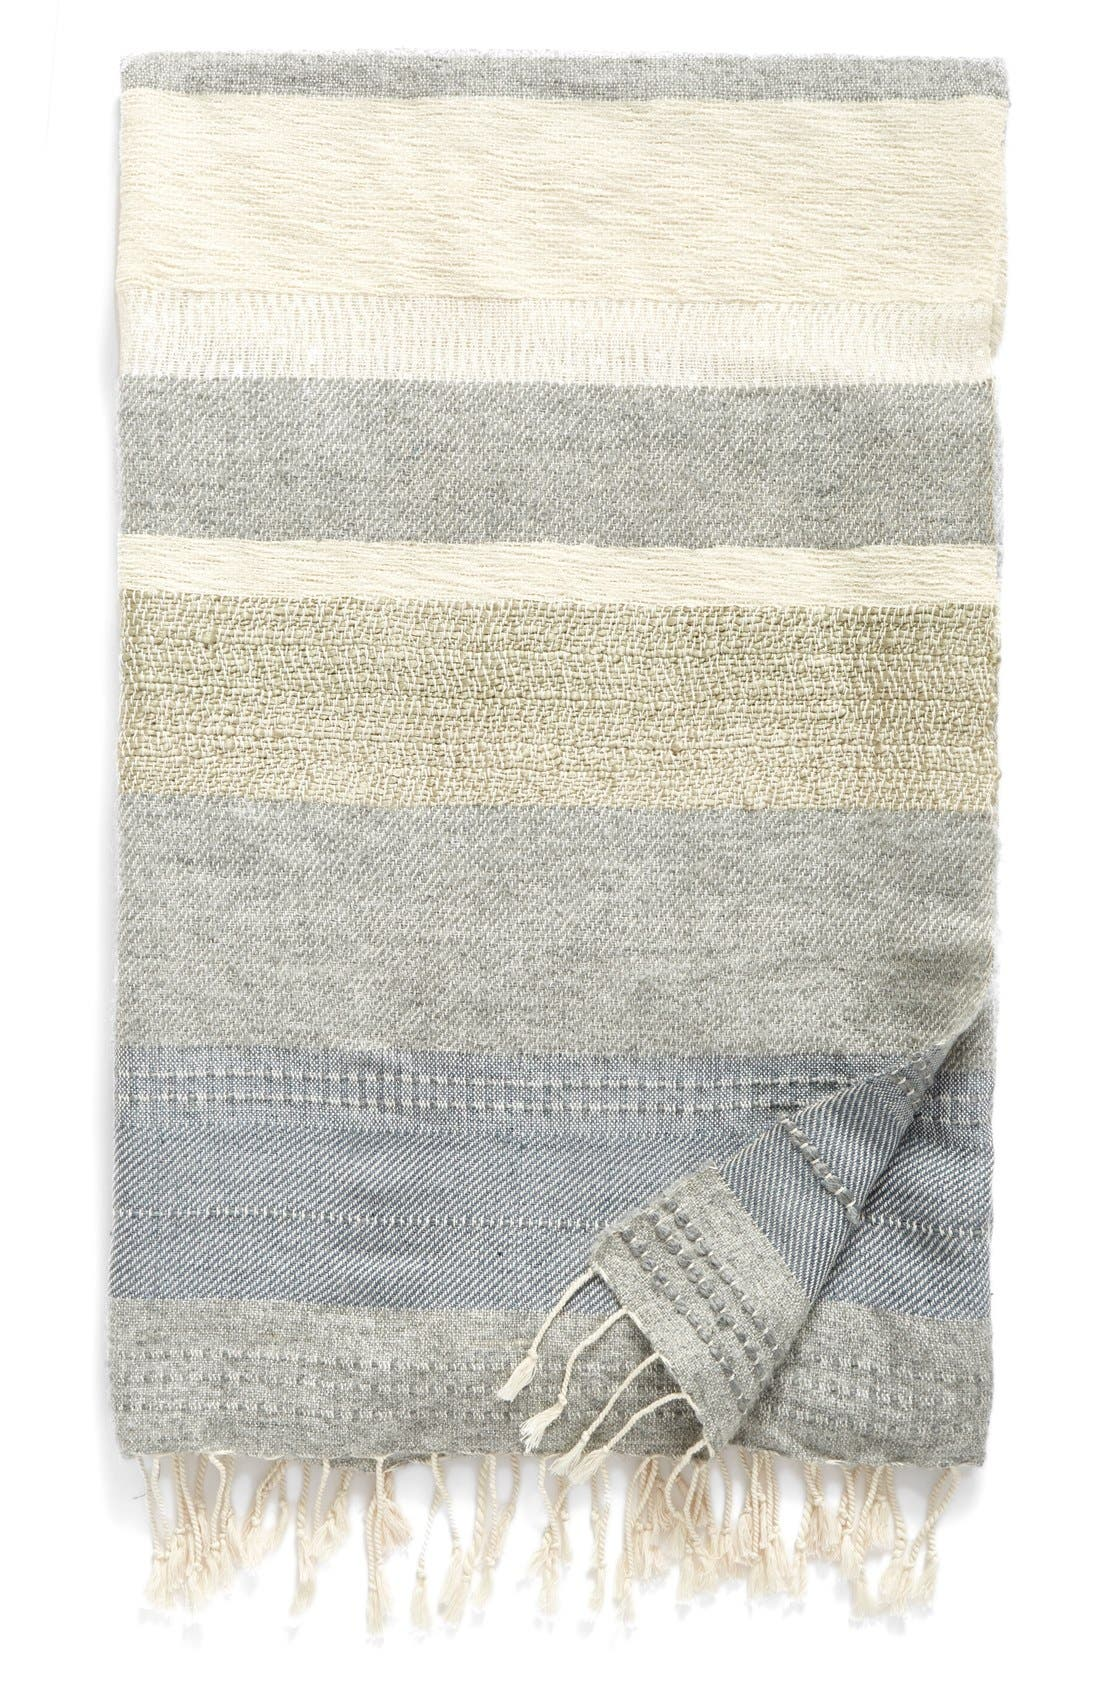 Alternate Image 1 Selected - Nordstrom at Home Multi Stitch Throw Blanket